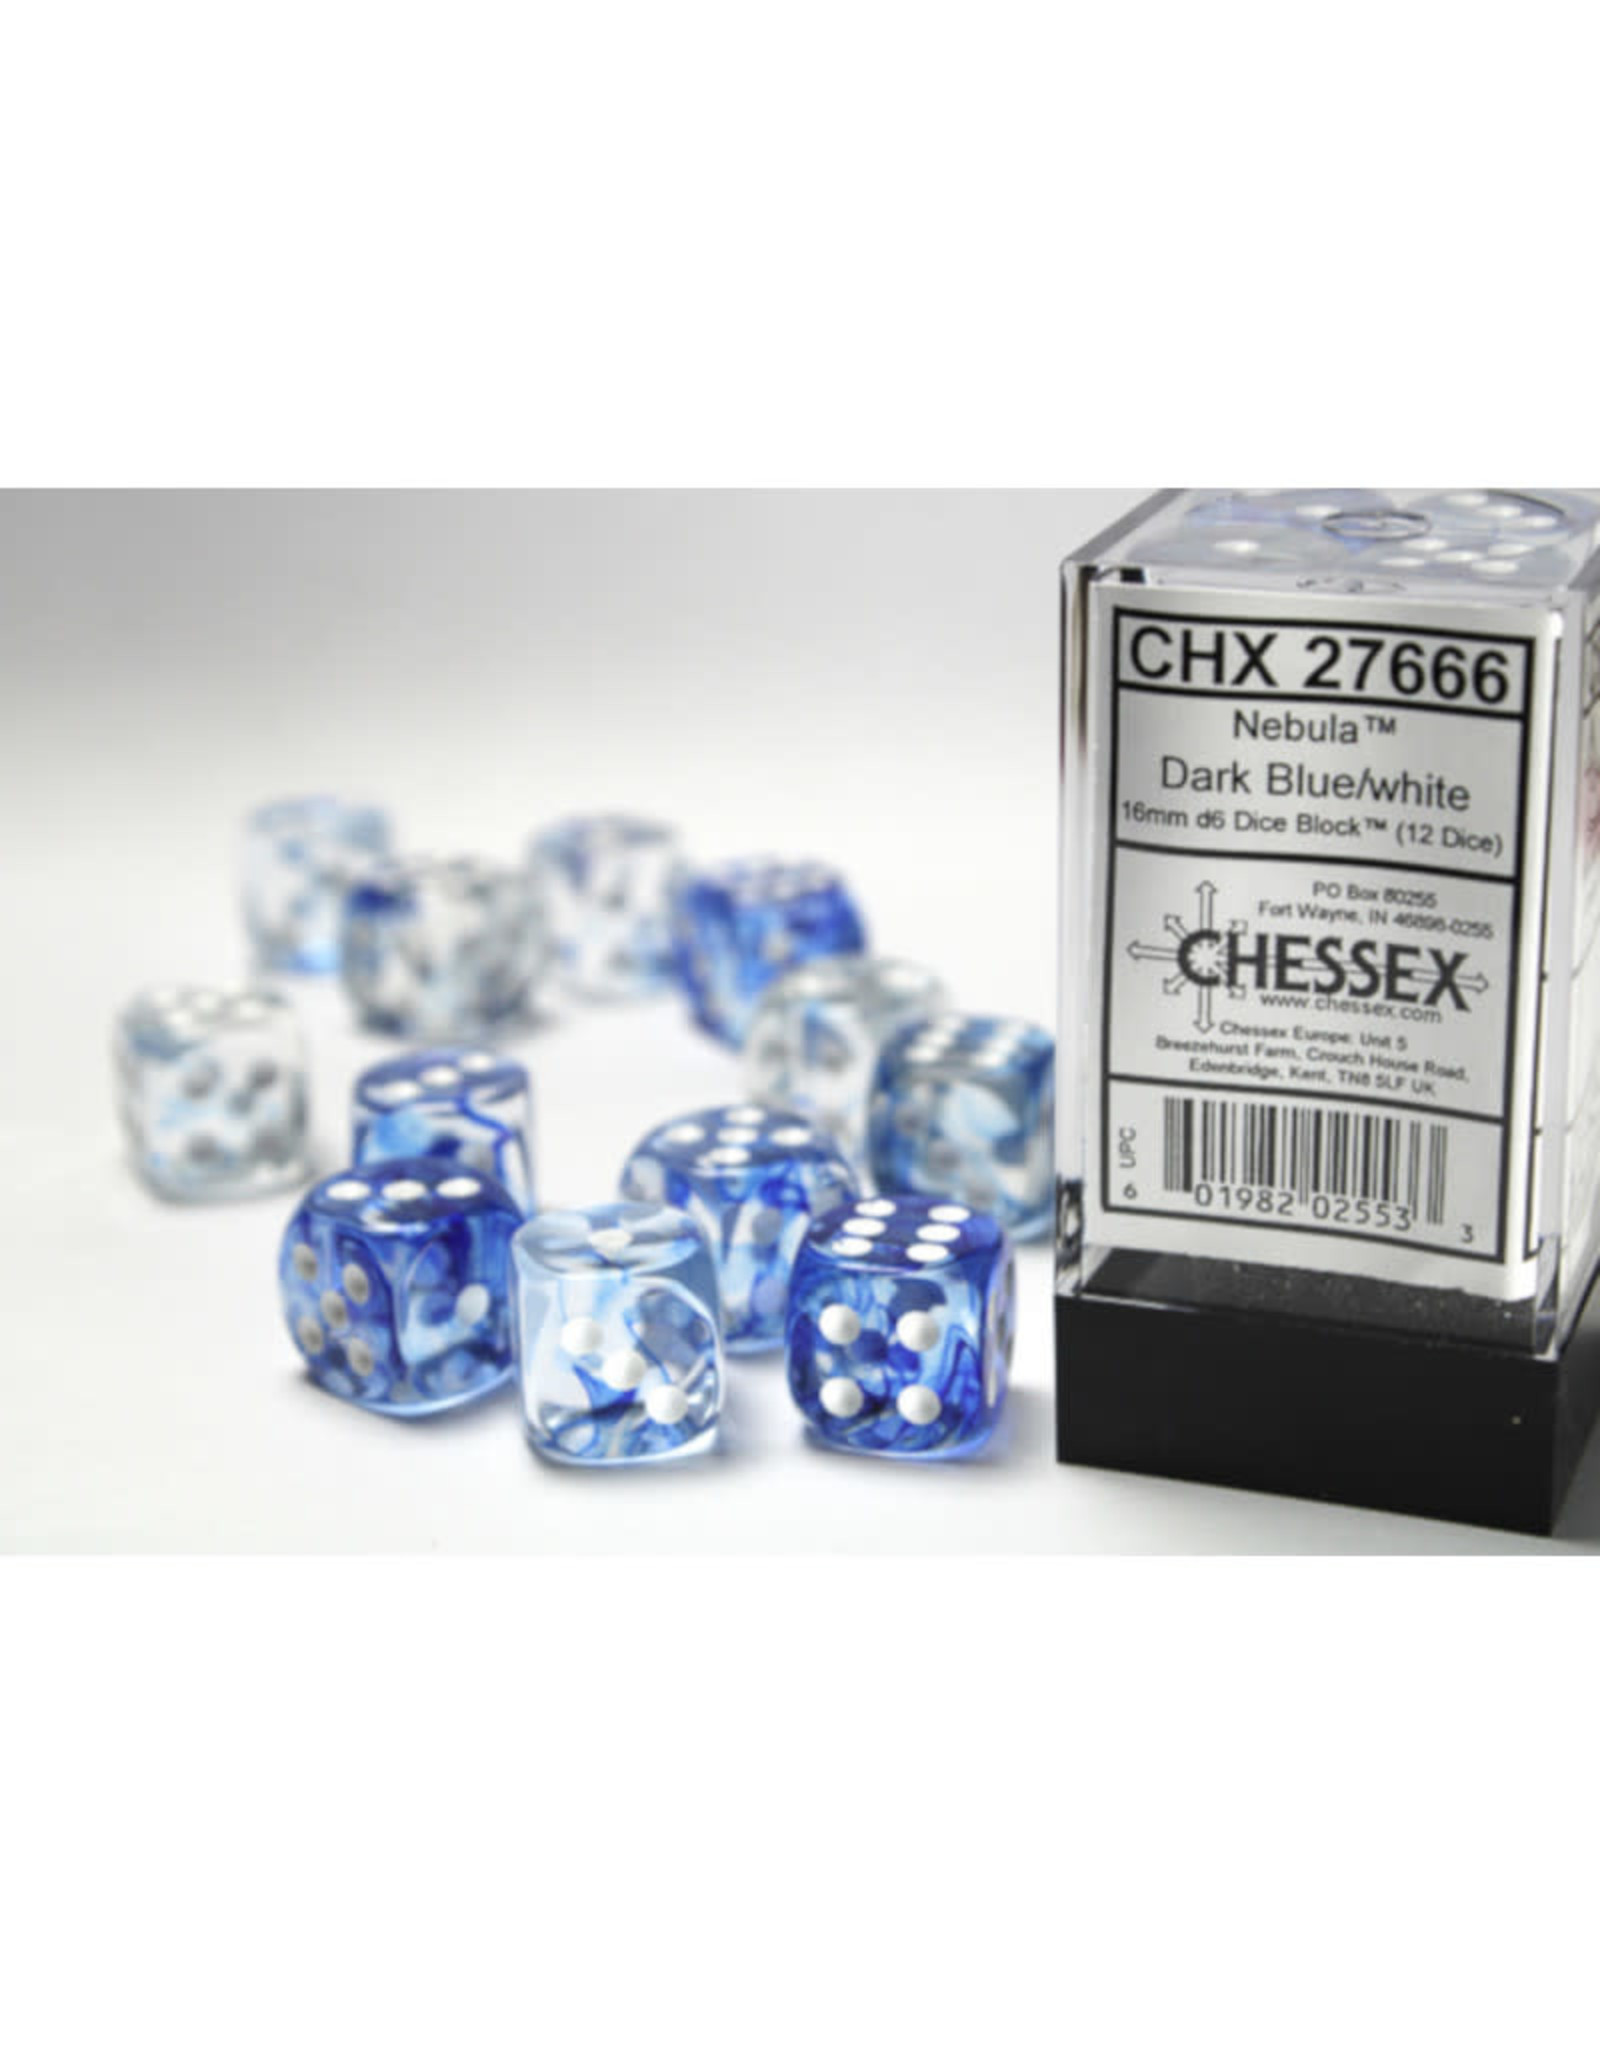 Chessex D6 Dice: 16mm Nebula  Dark Blue/White/Black (12)